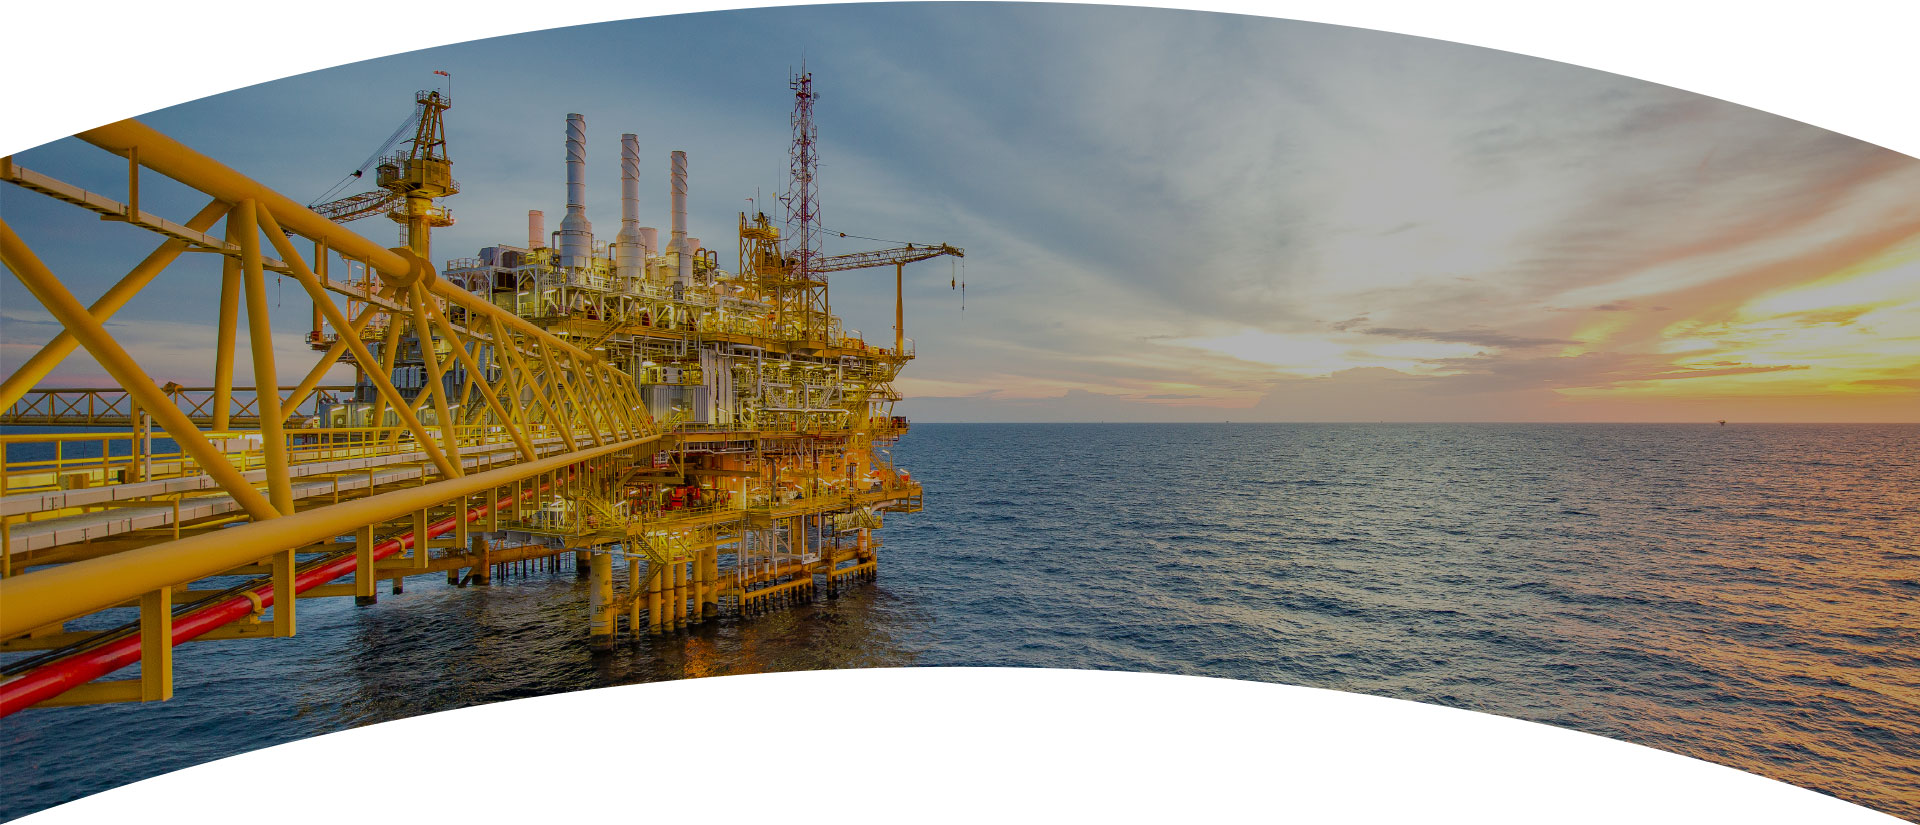 Supplying to RIGS in all part of the world